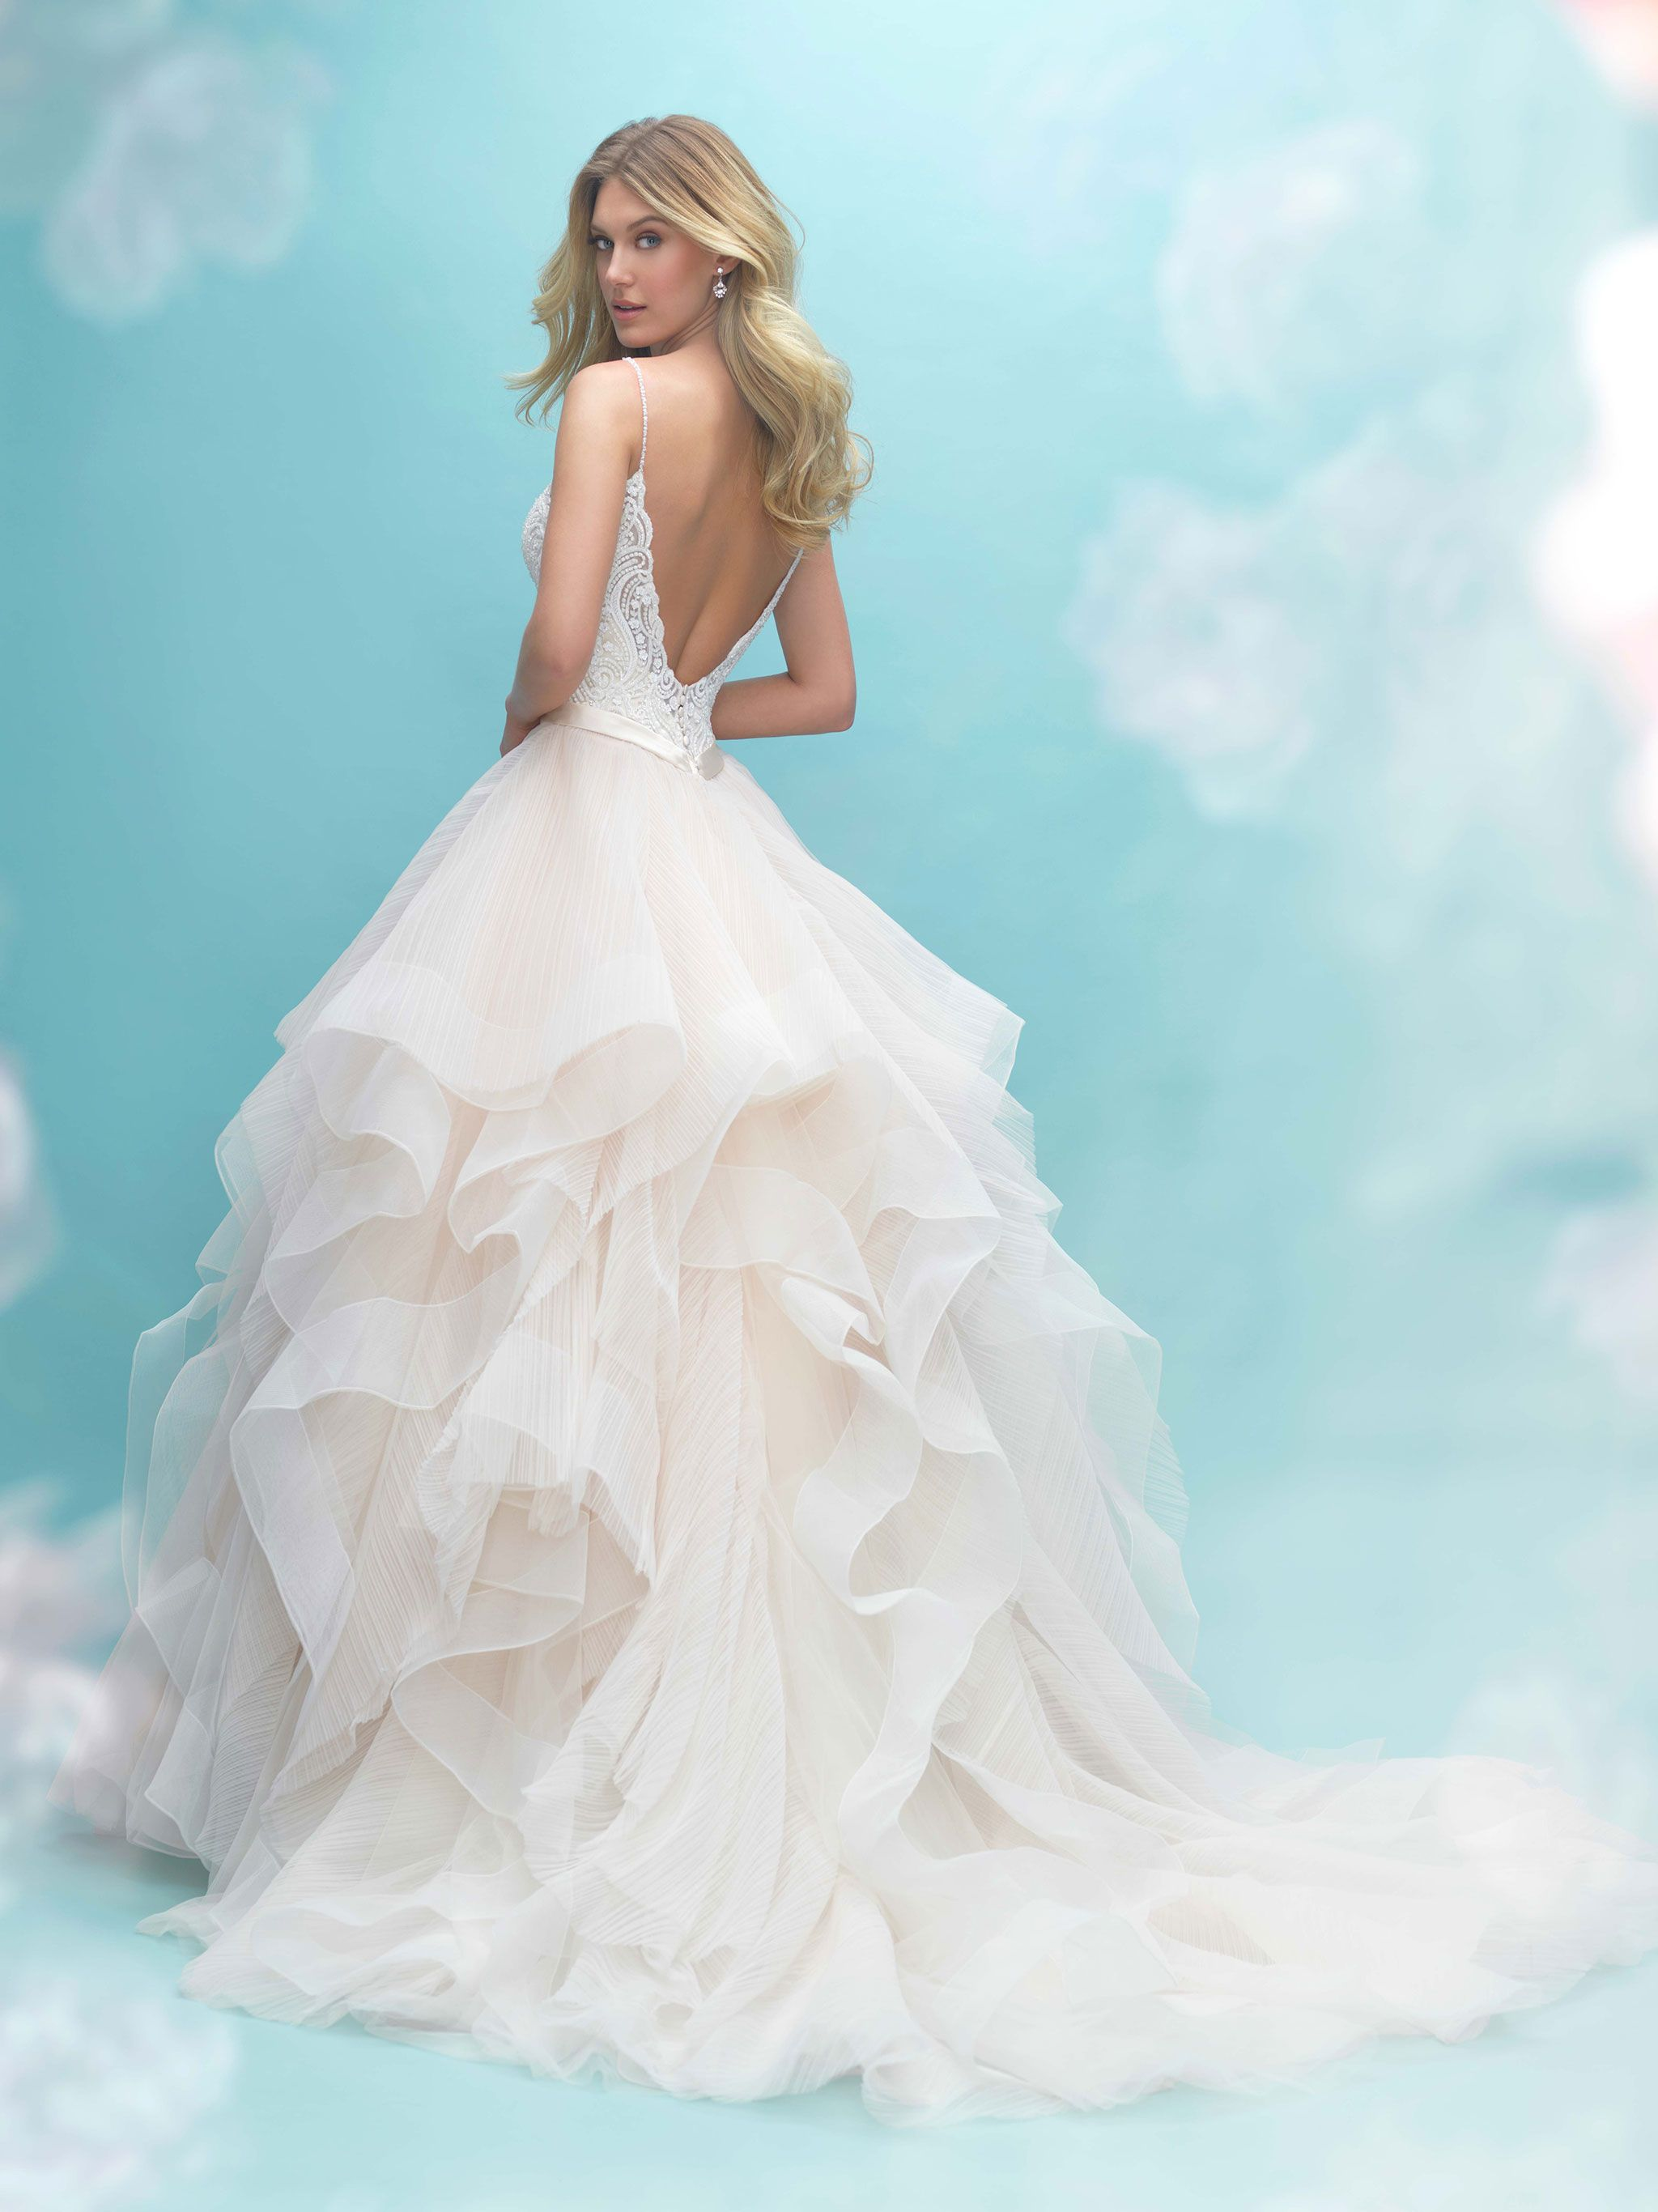 Airy, textured ruffles comprise the skirt of this delicate ballgown ...